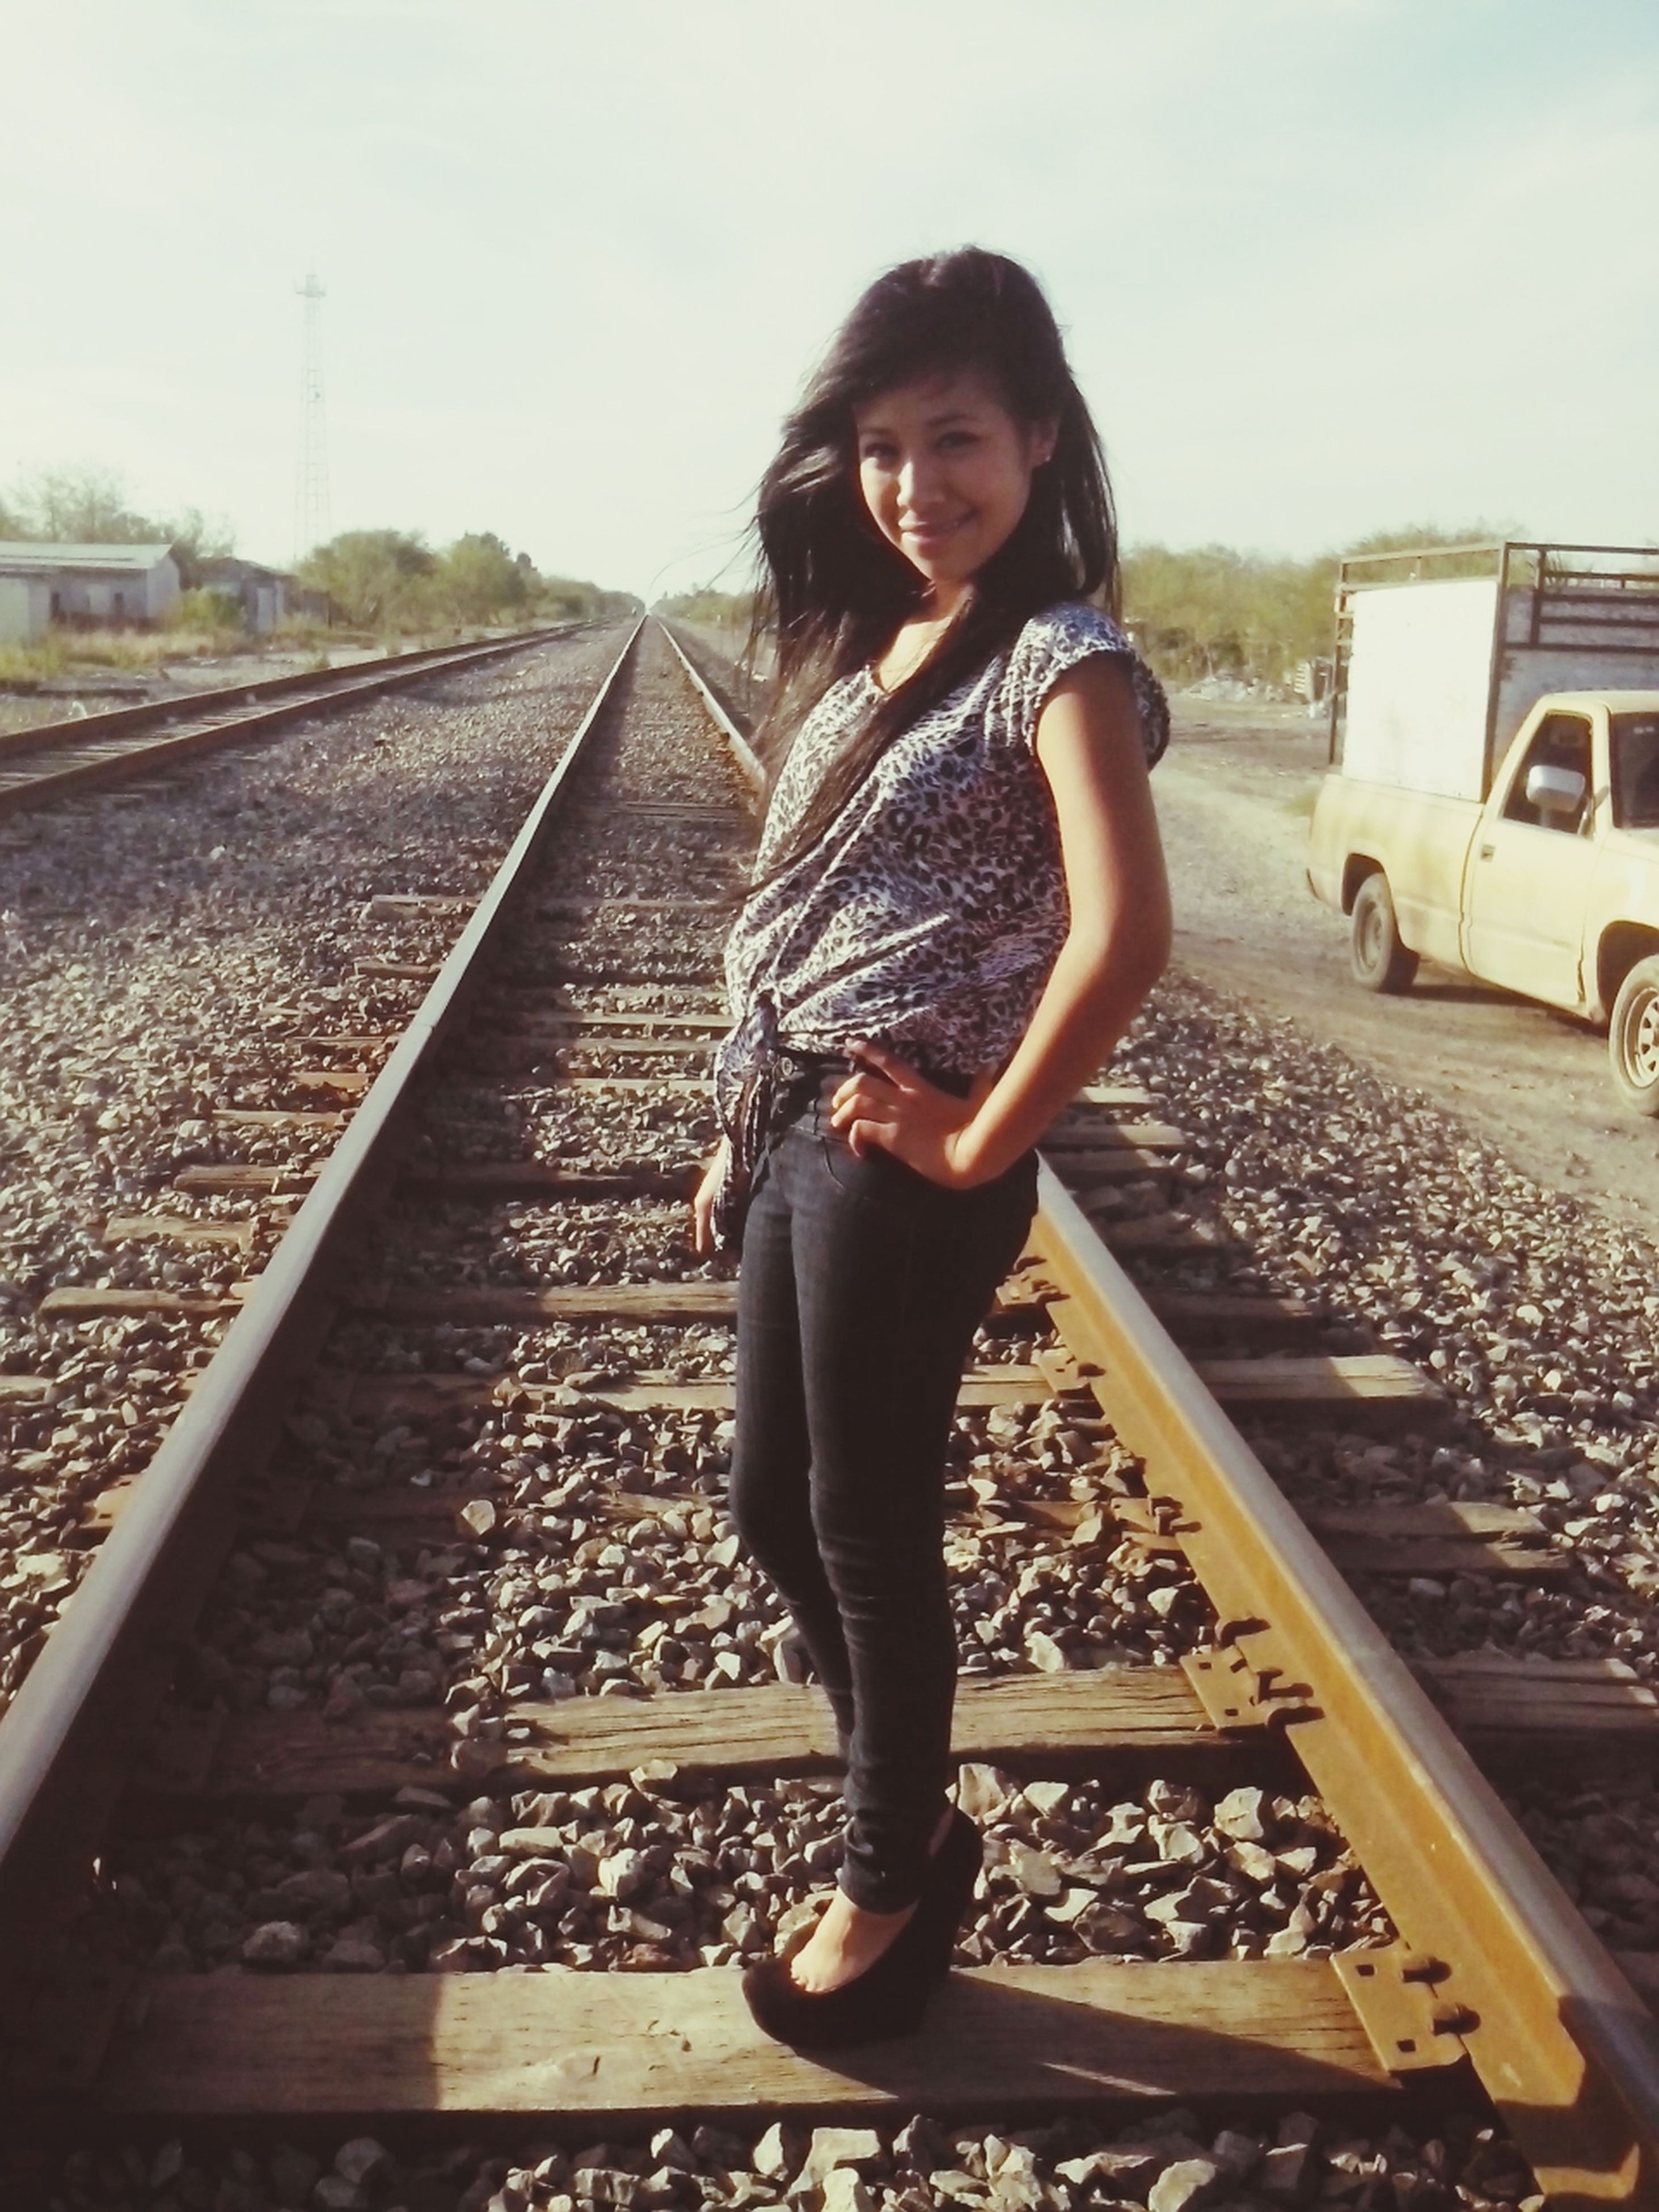 railroad track, young adult, lifestyles, transportation, casual clothing, person, portrait, looking at camera, rail transportation, young women, standing, full length, front view, leisure activity, public transportation, travel, smiling